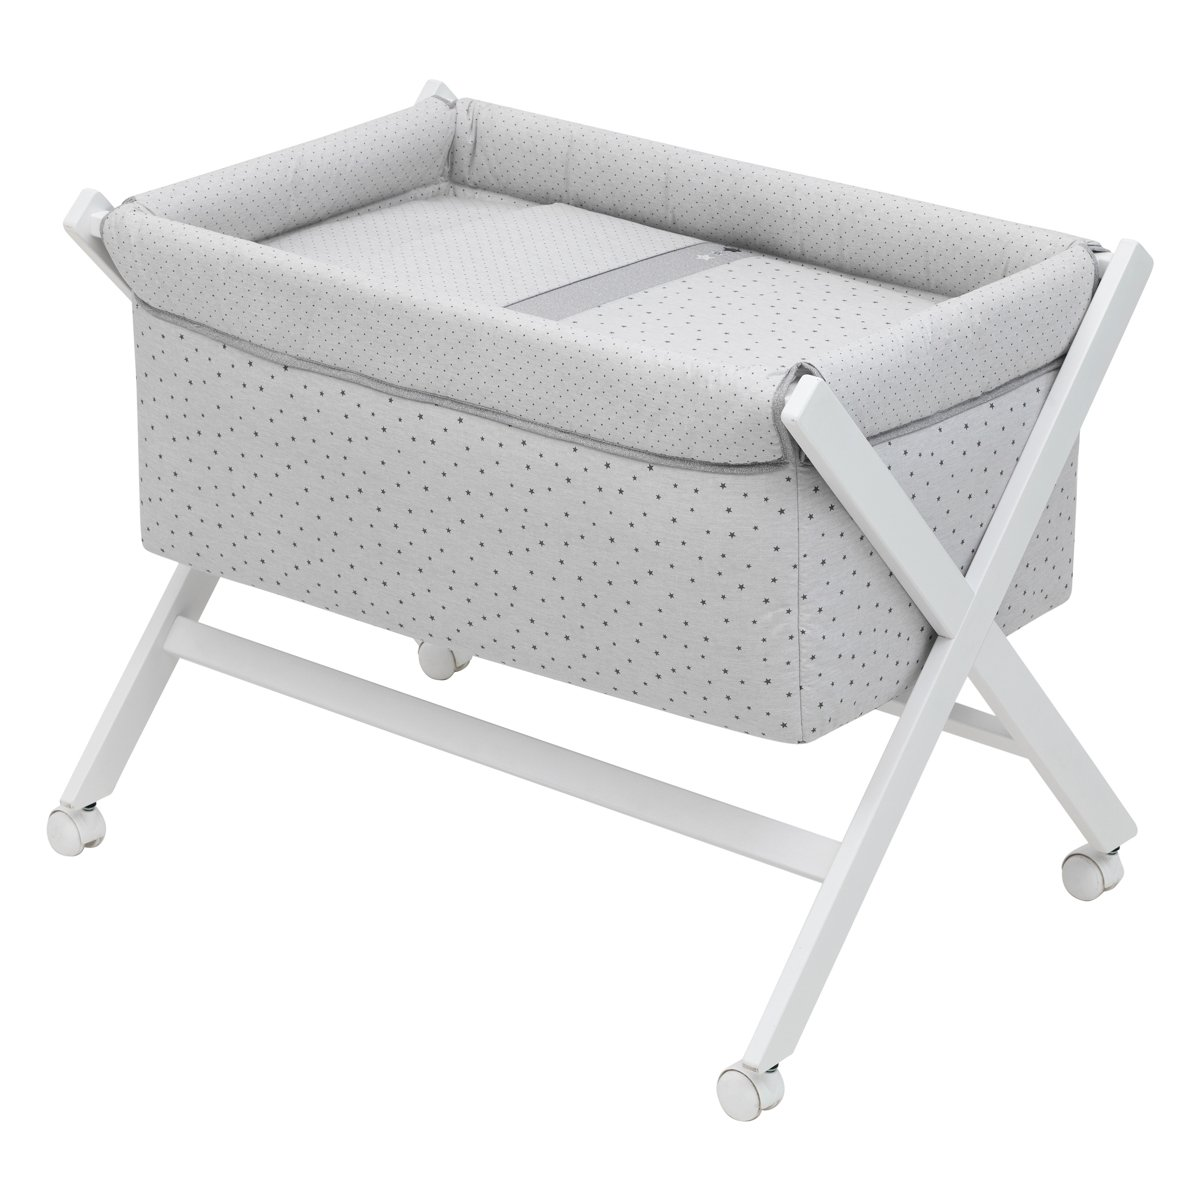 Cambrass Bed x Wood Une (55 x 87 x 74 cm, Small, Stela Grey) 37347.0